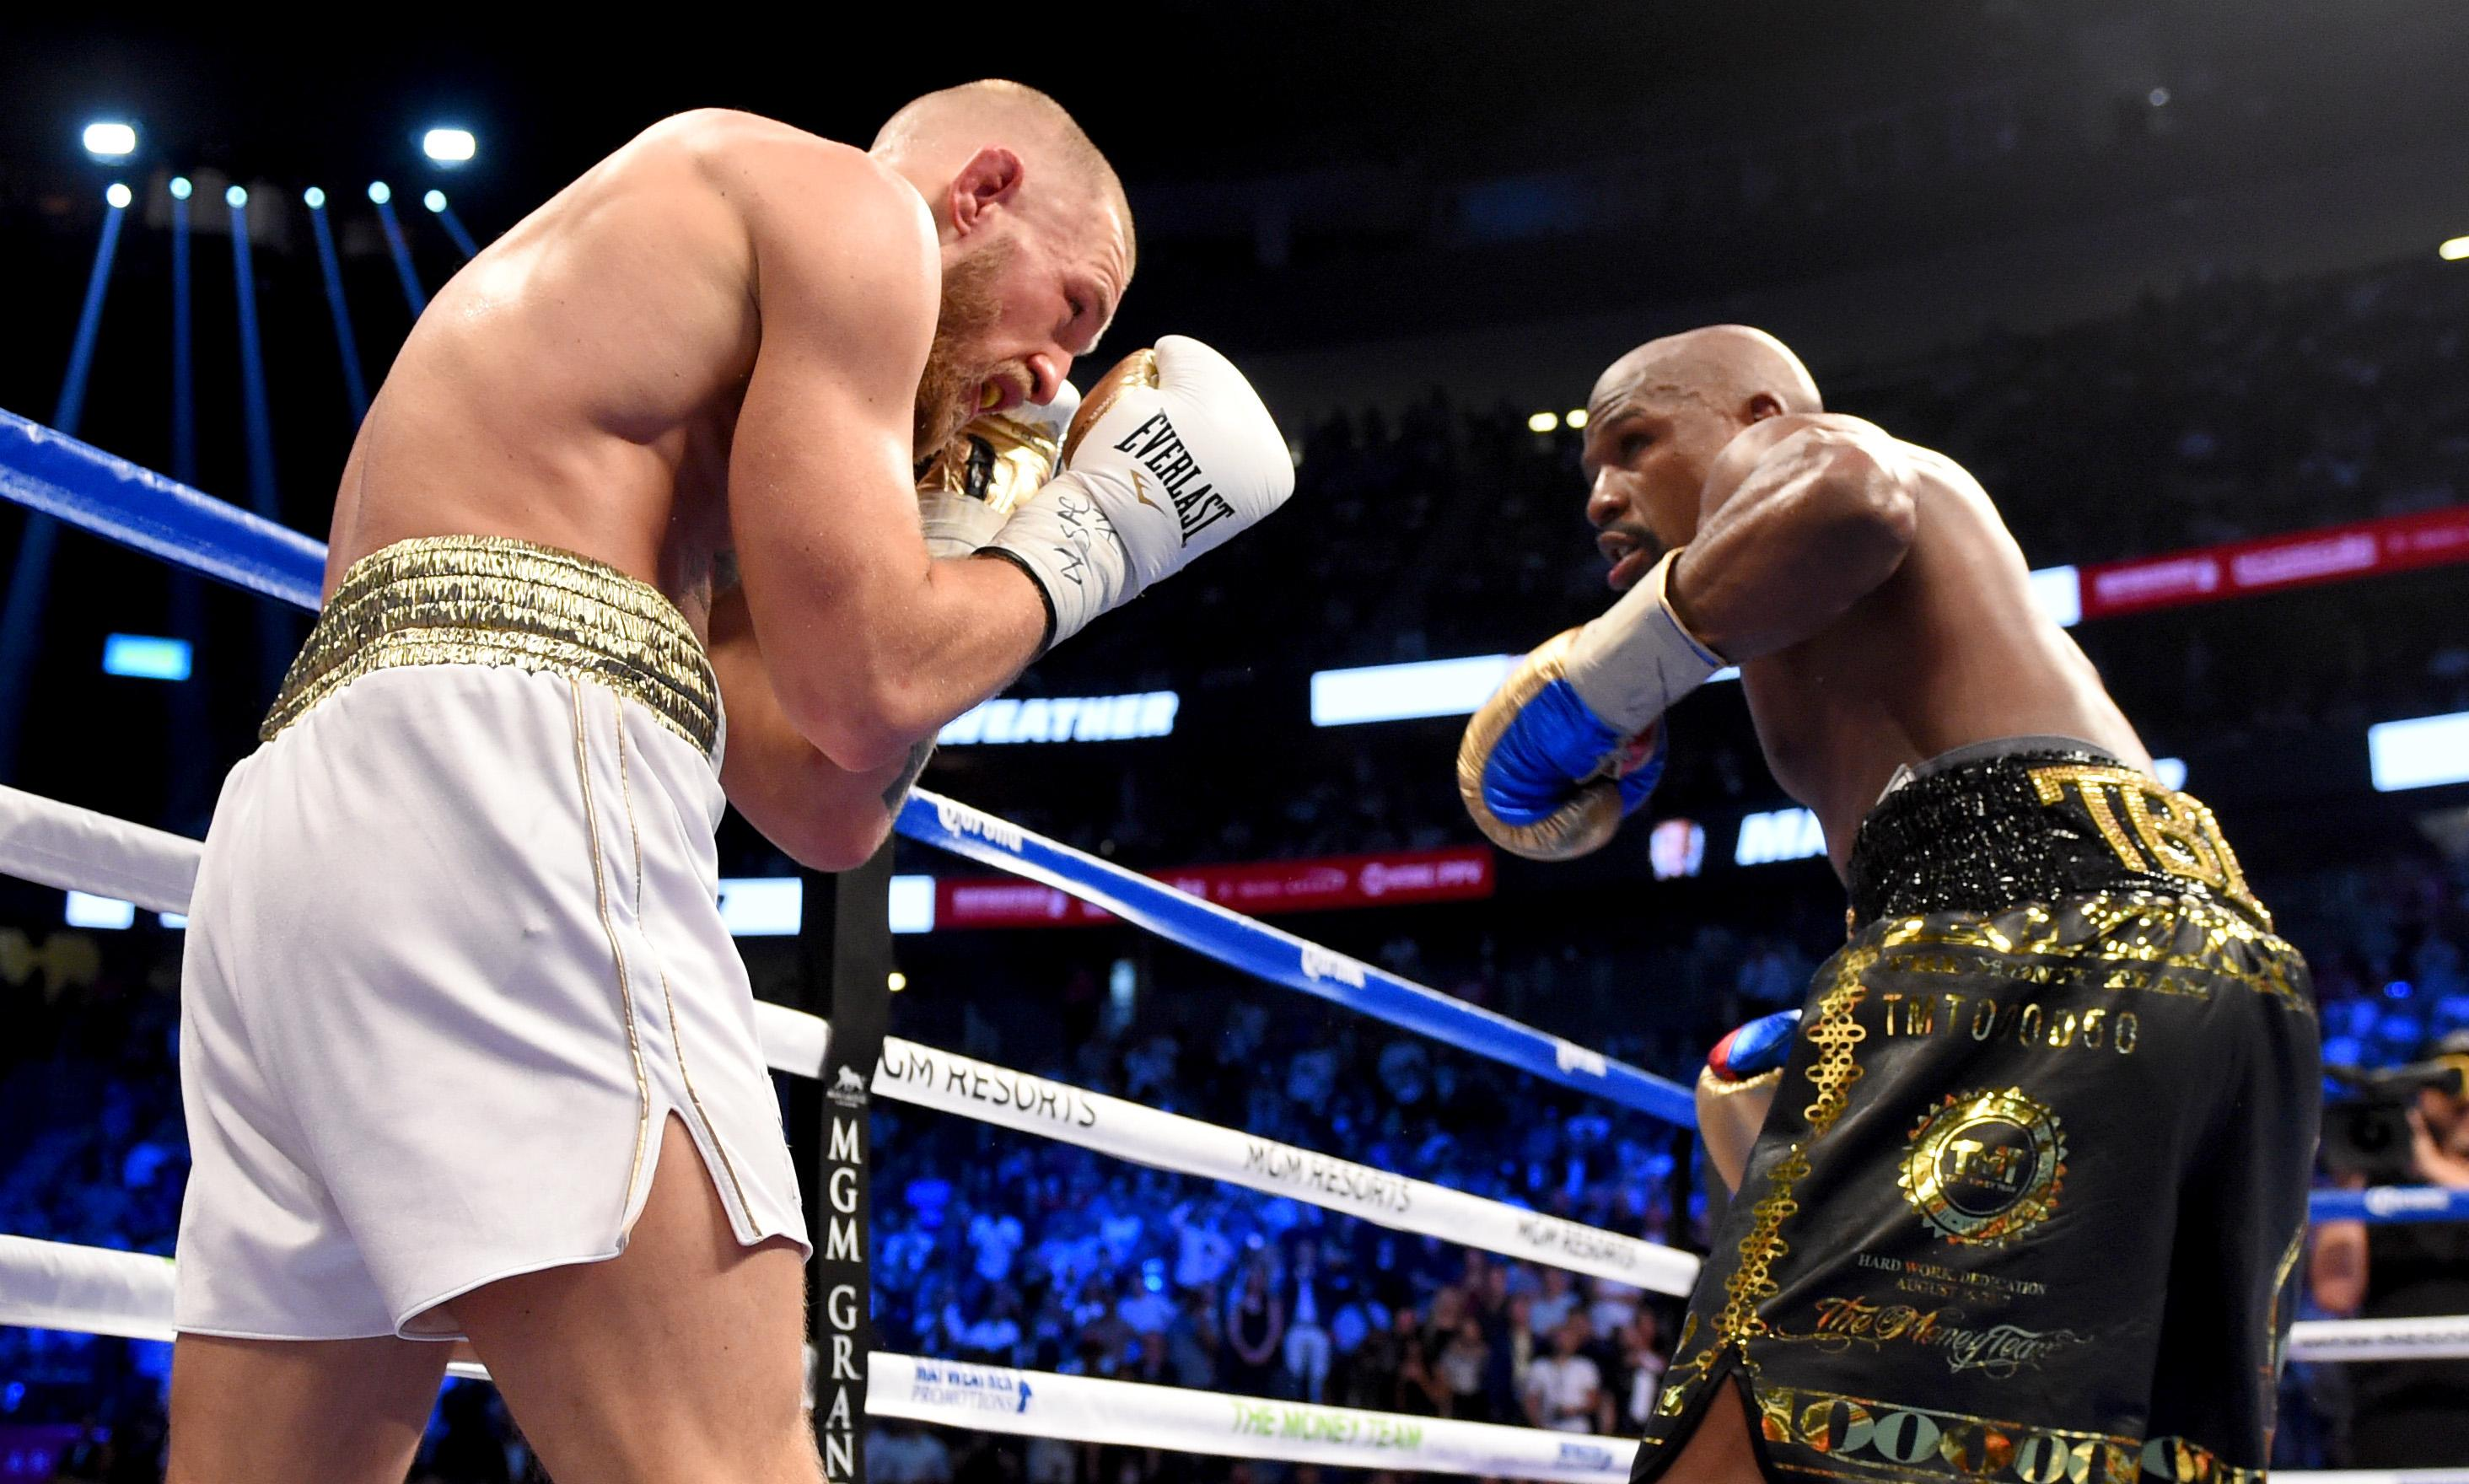 Last year, Conor McGregor lost to 50-0 star Floyd Mayweather in the ring